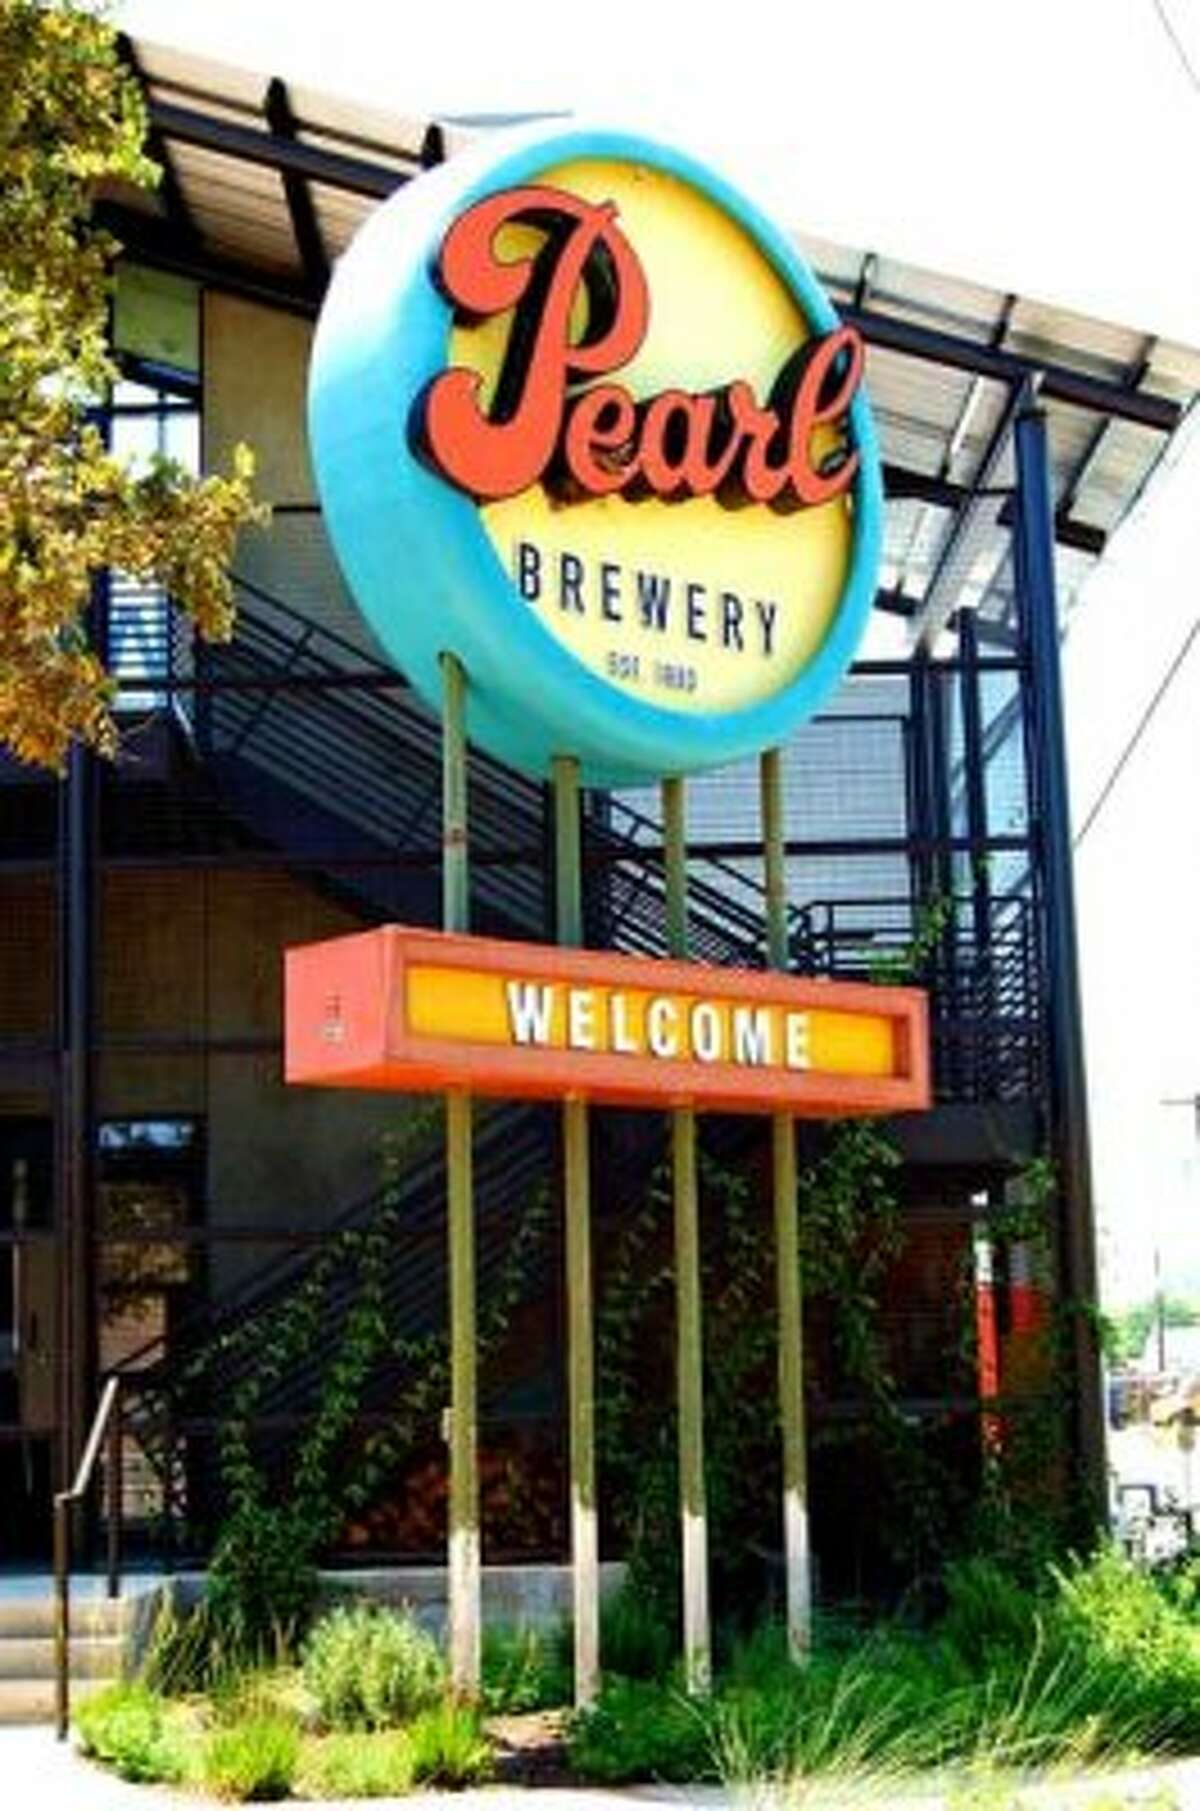 The Pearl Brewing Company (also known as the Pearl Brewery or just Pearl) was established in 1883.